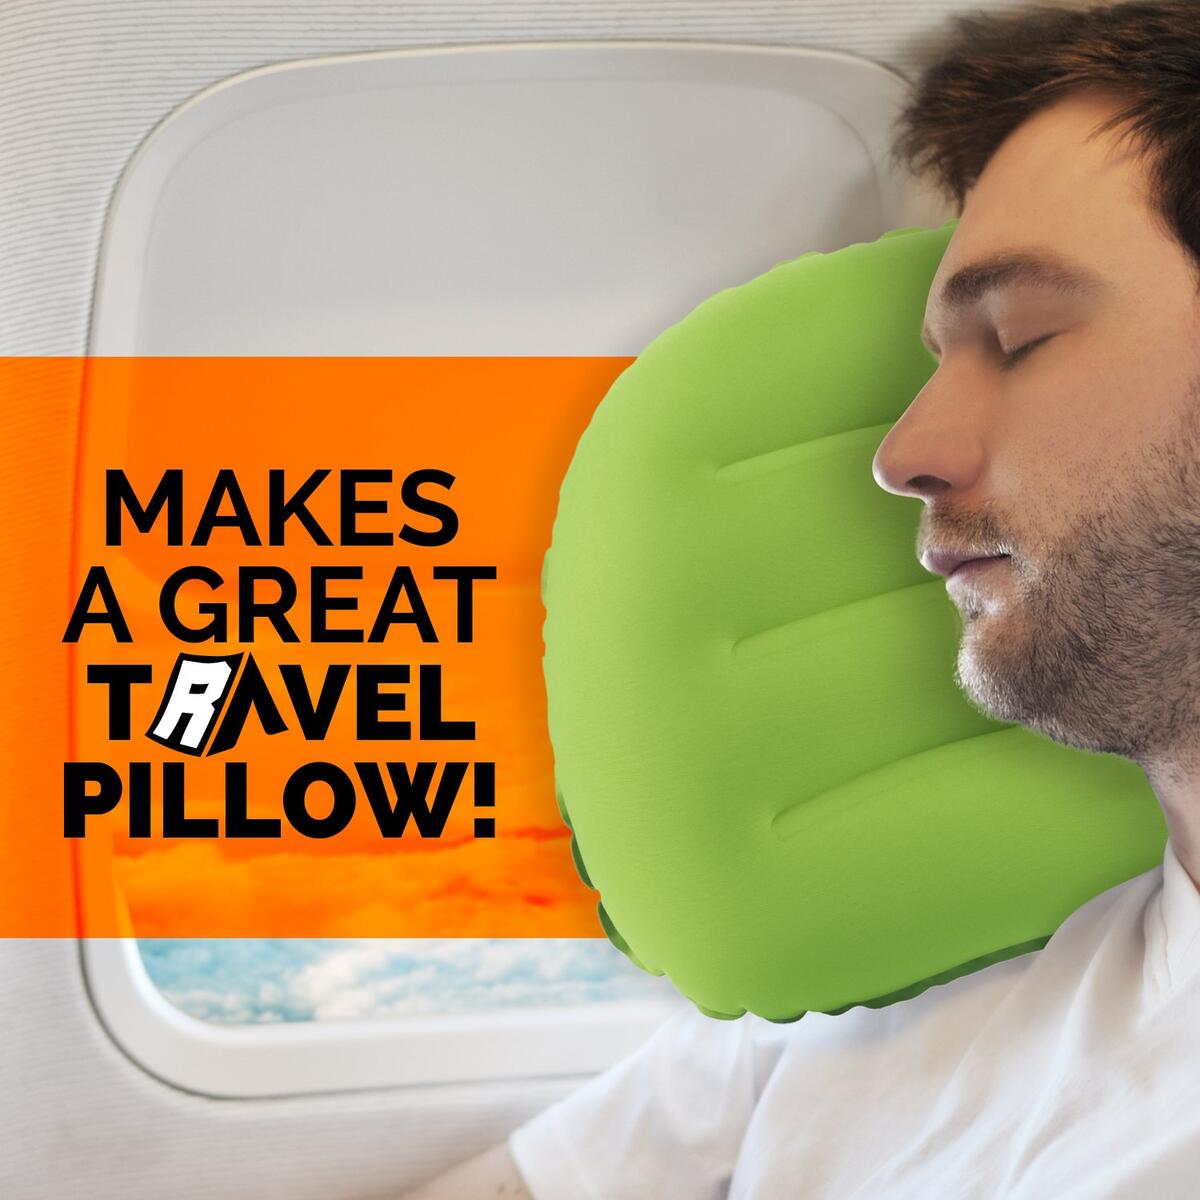 Camping Pillow - Ultralight Inflatable Travel Pillows, Orange